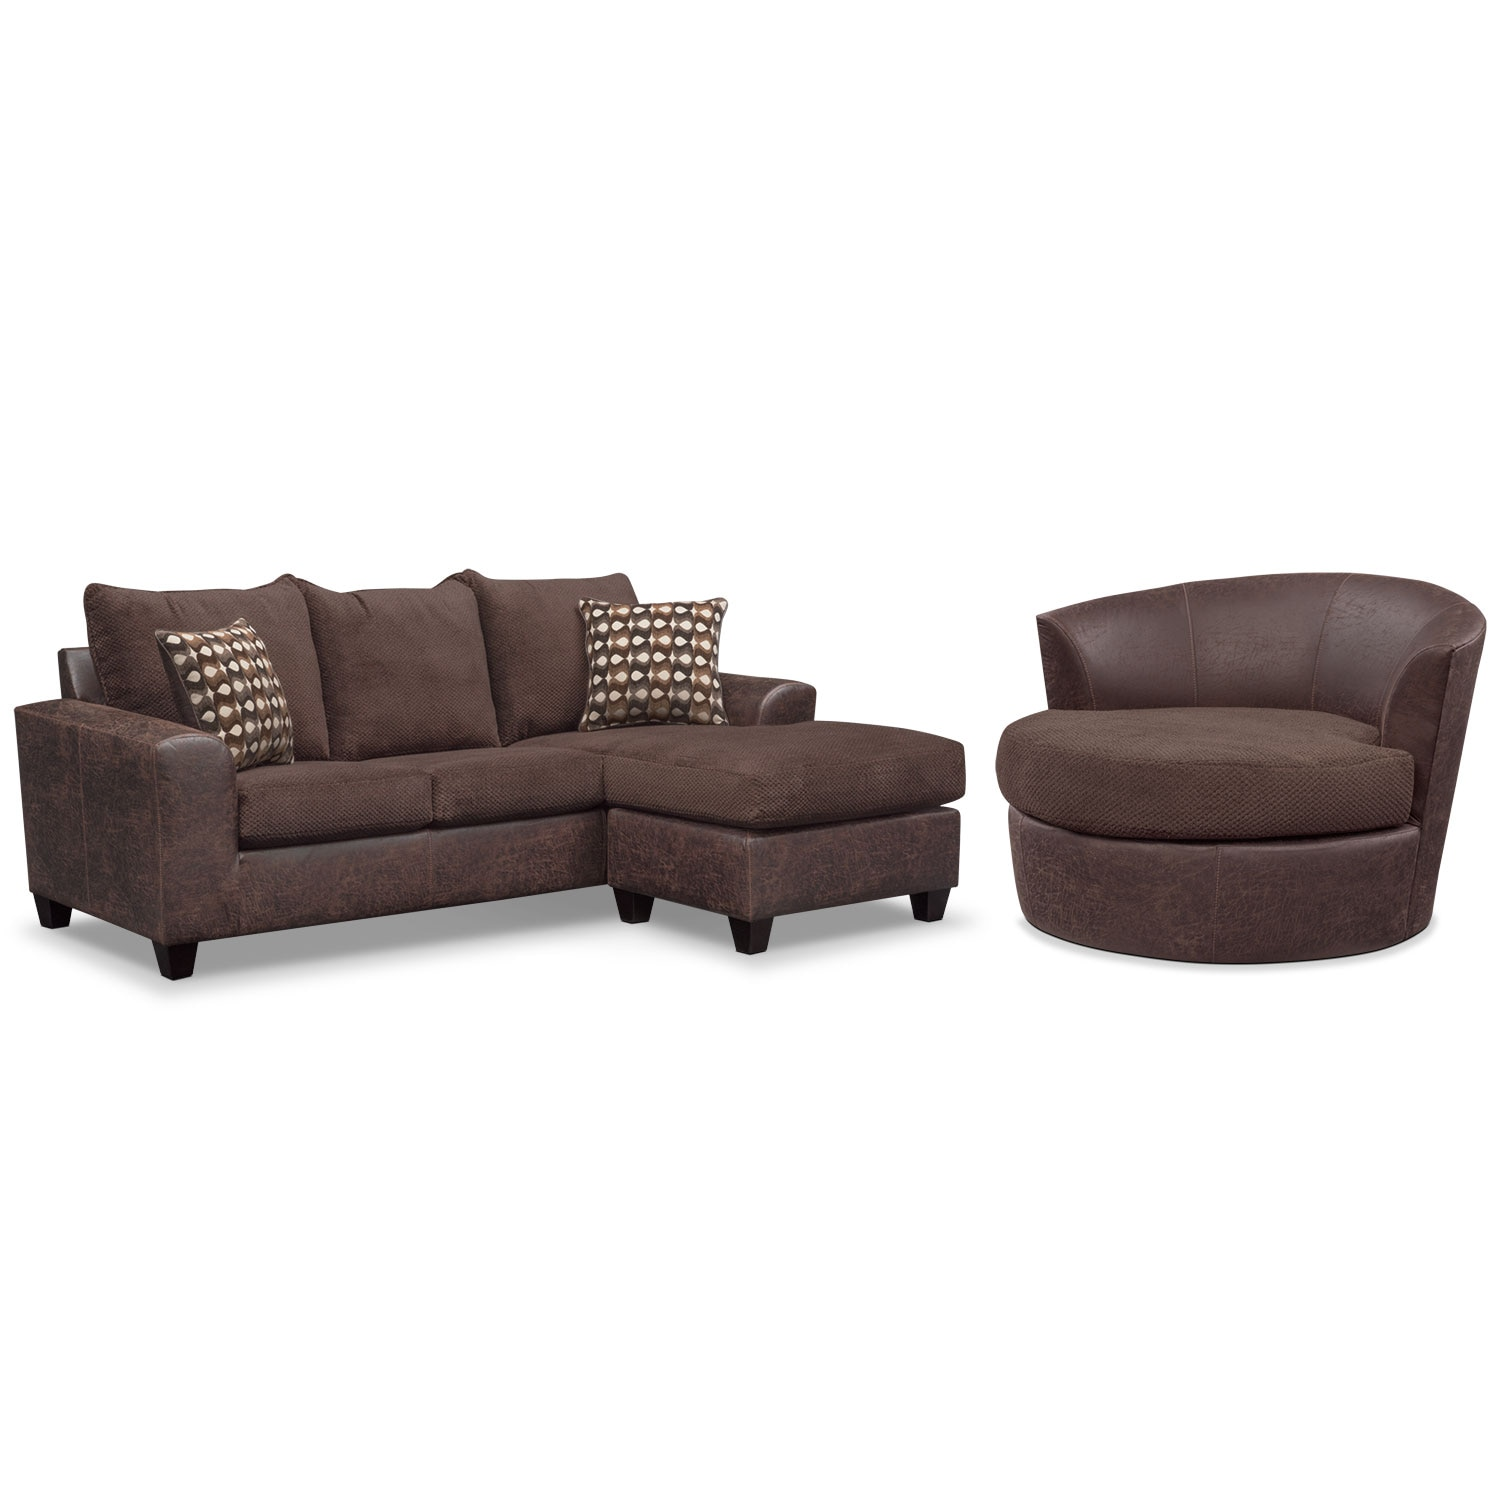 Brando sofa with chaise and swivel chair set chocolate for Chaise lounge couch set